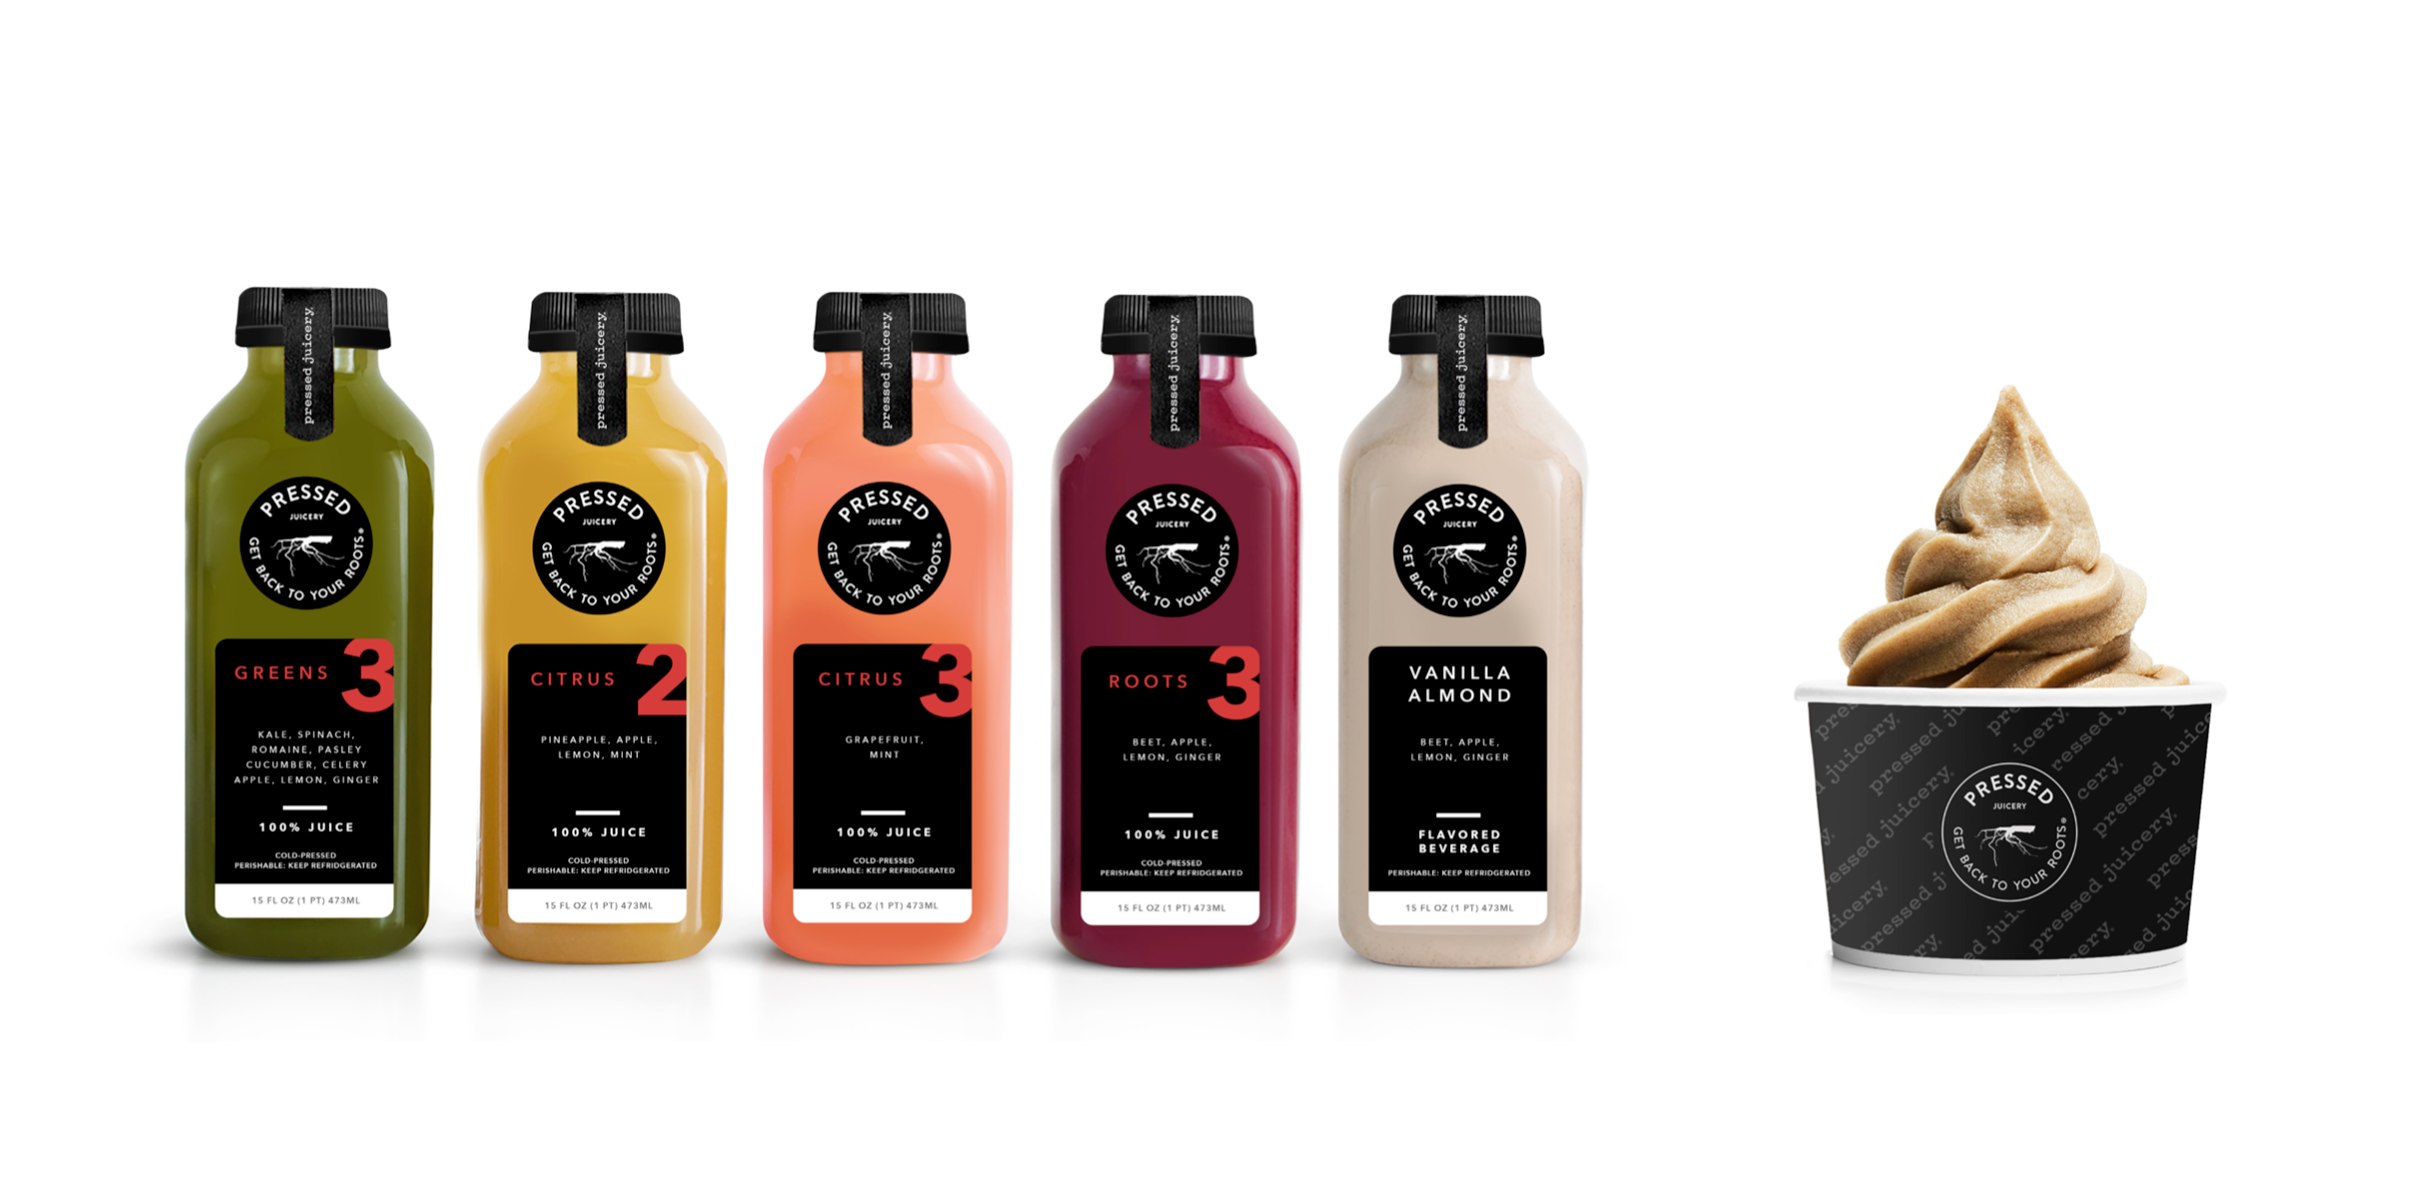 Packaging Design / Press Juicery